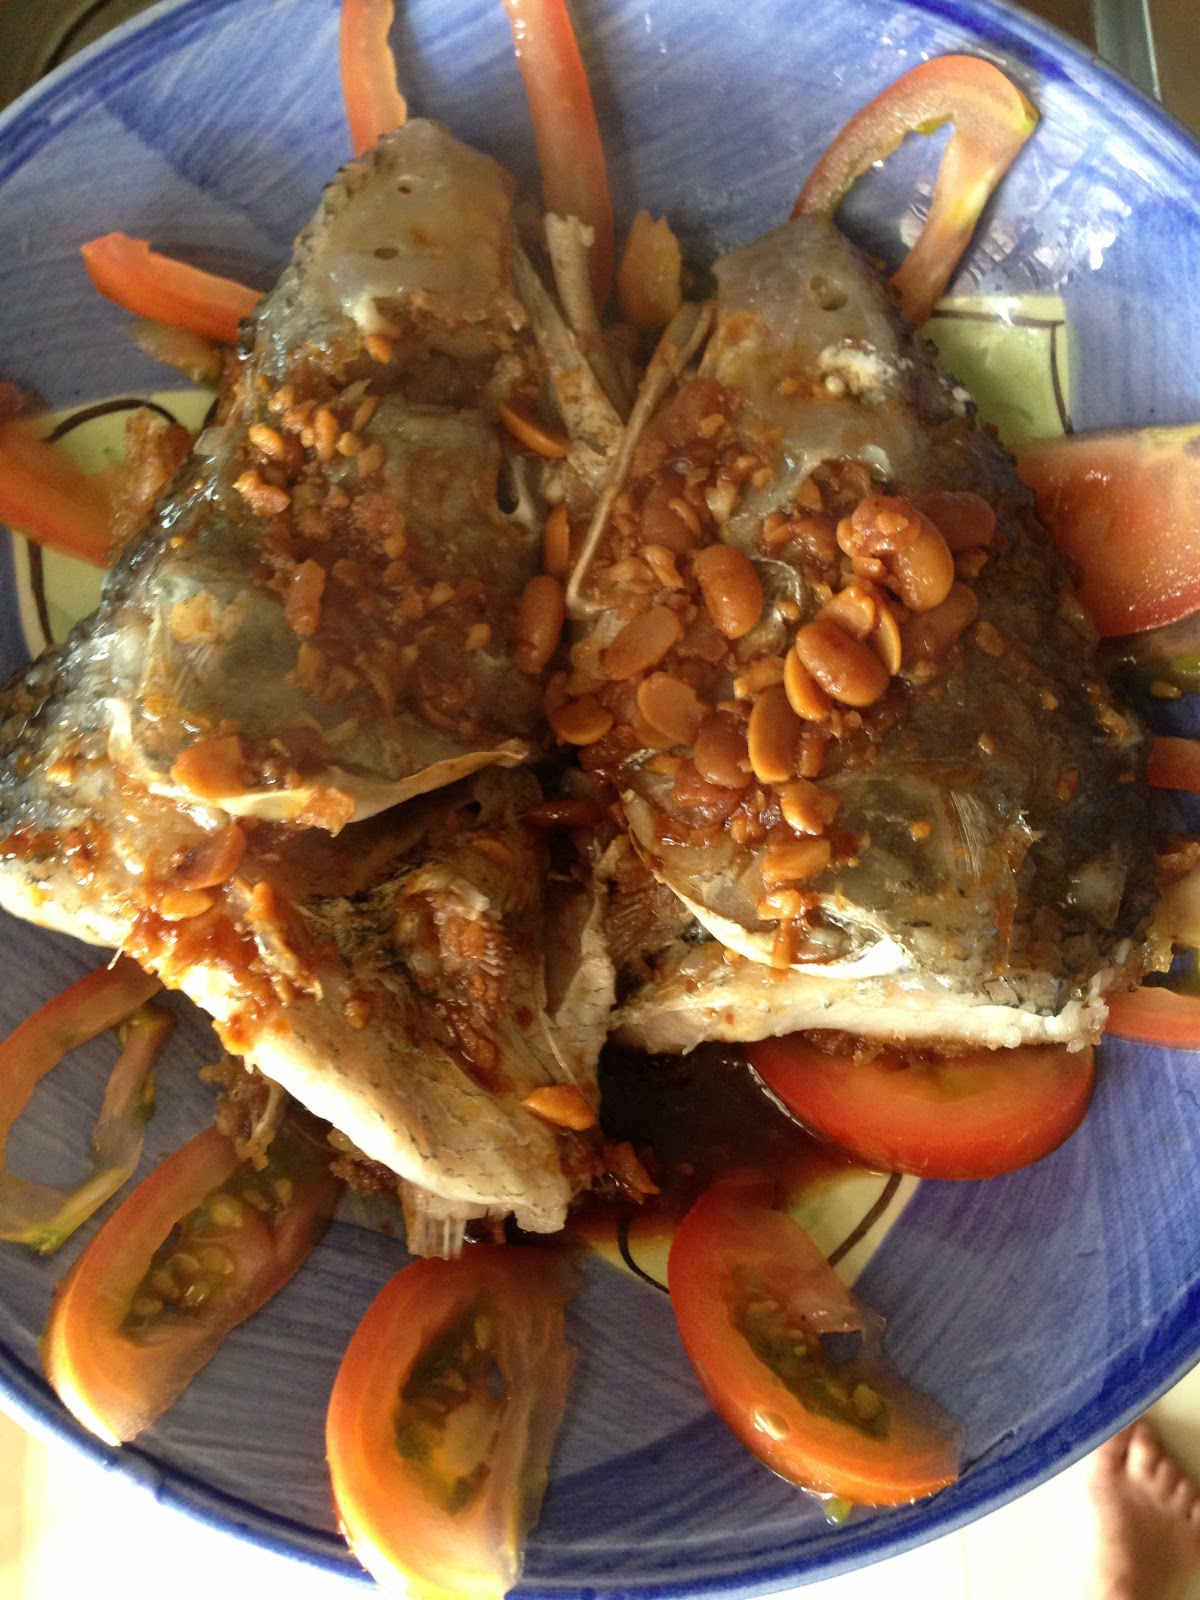 Fish oil benefits for What is the best oil to fry fish in